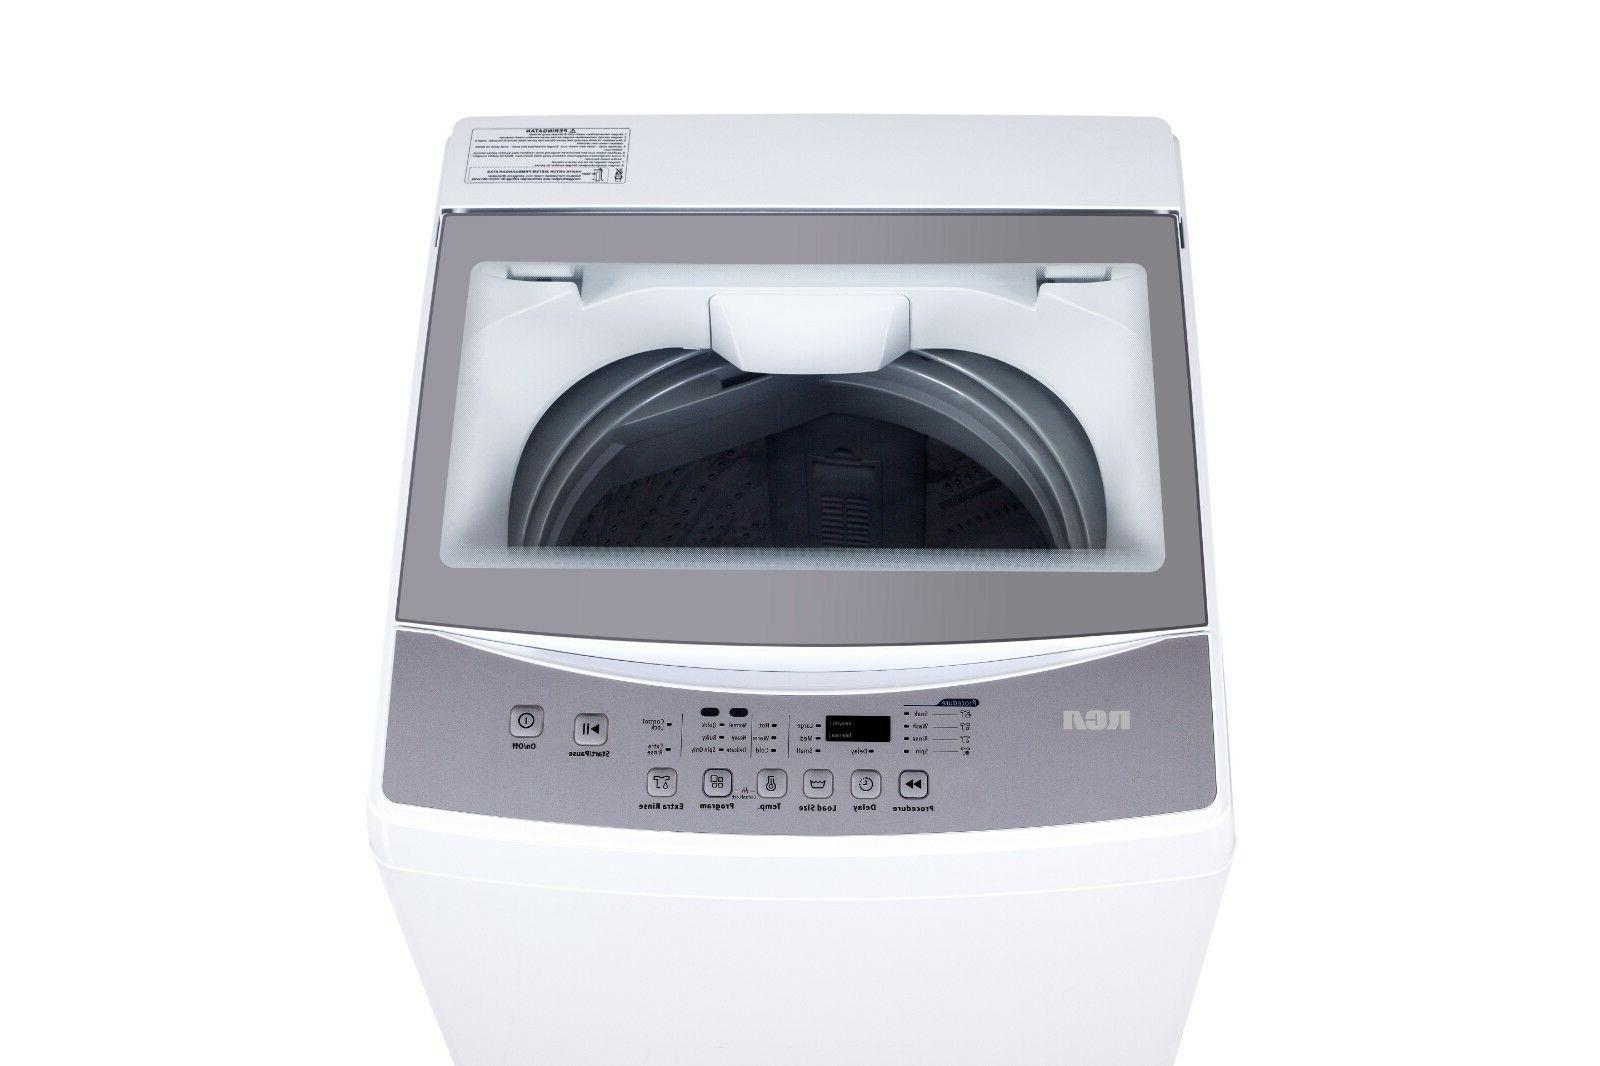 2.0 Washer, Cycles Water Levels,